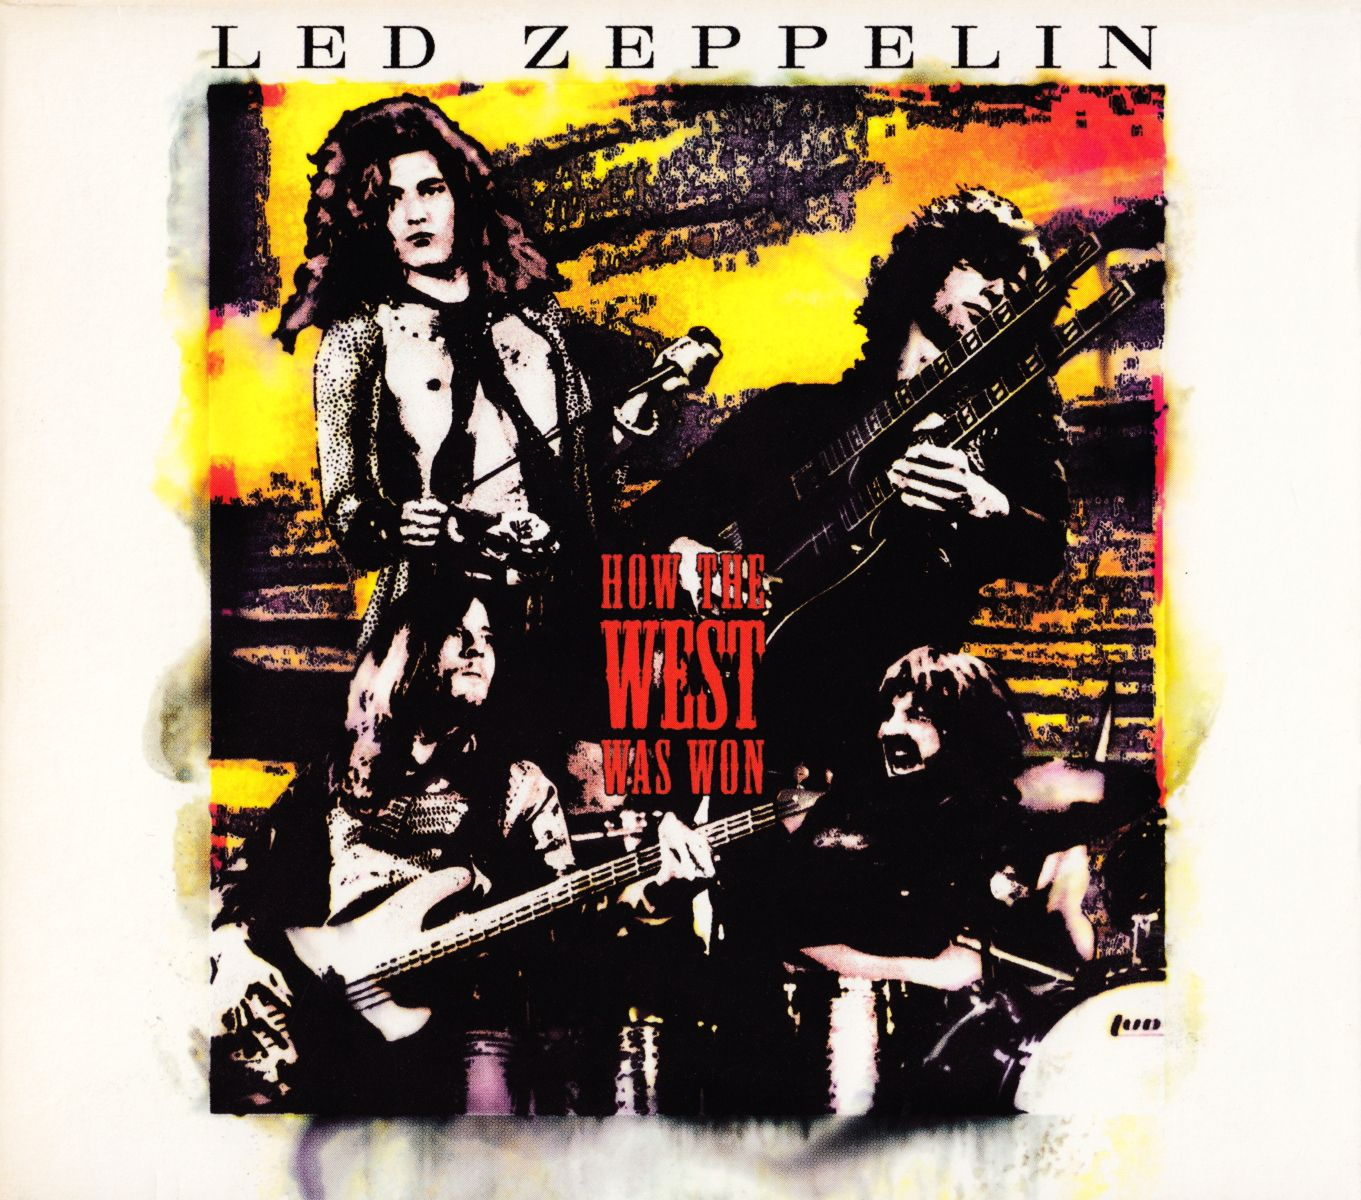 Led Zeppelin - How The West Was Won album cover